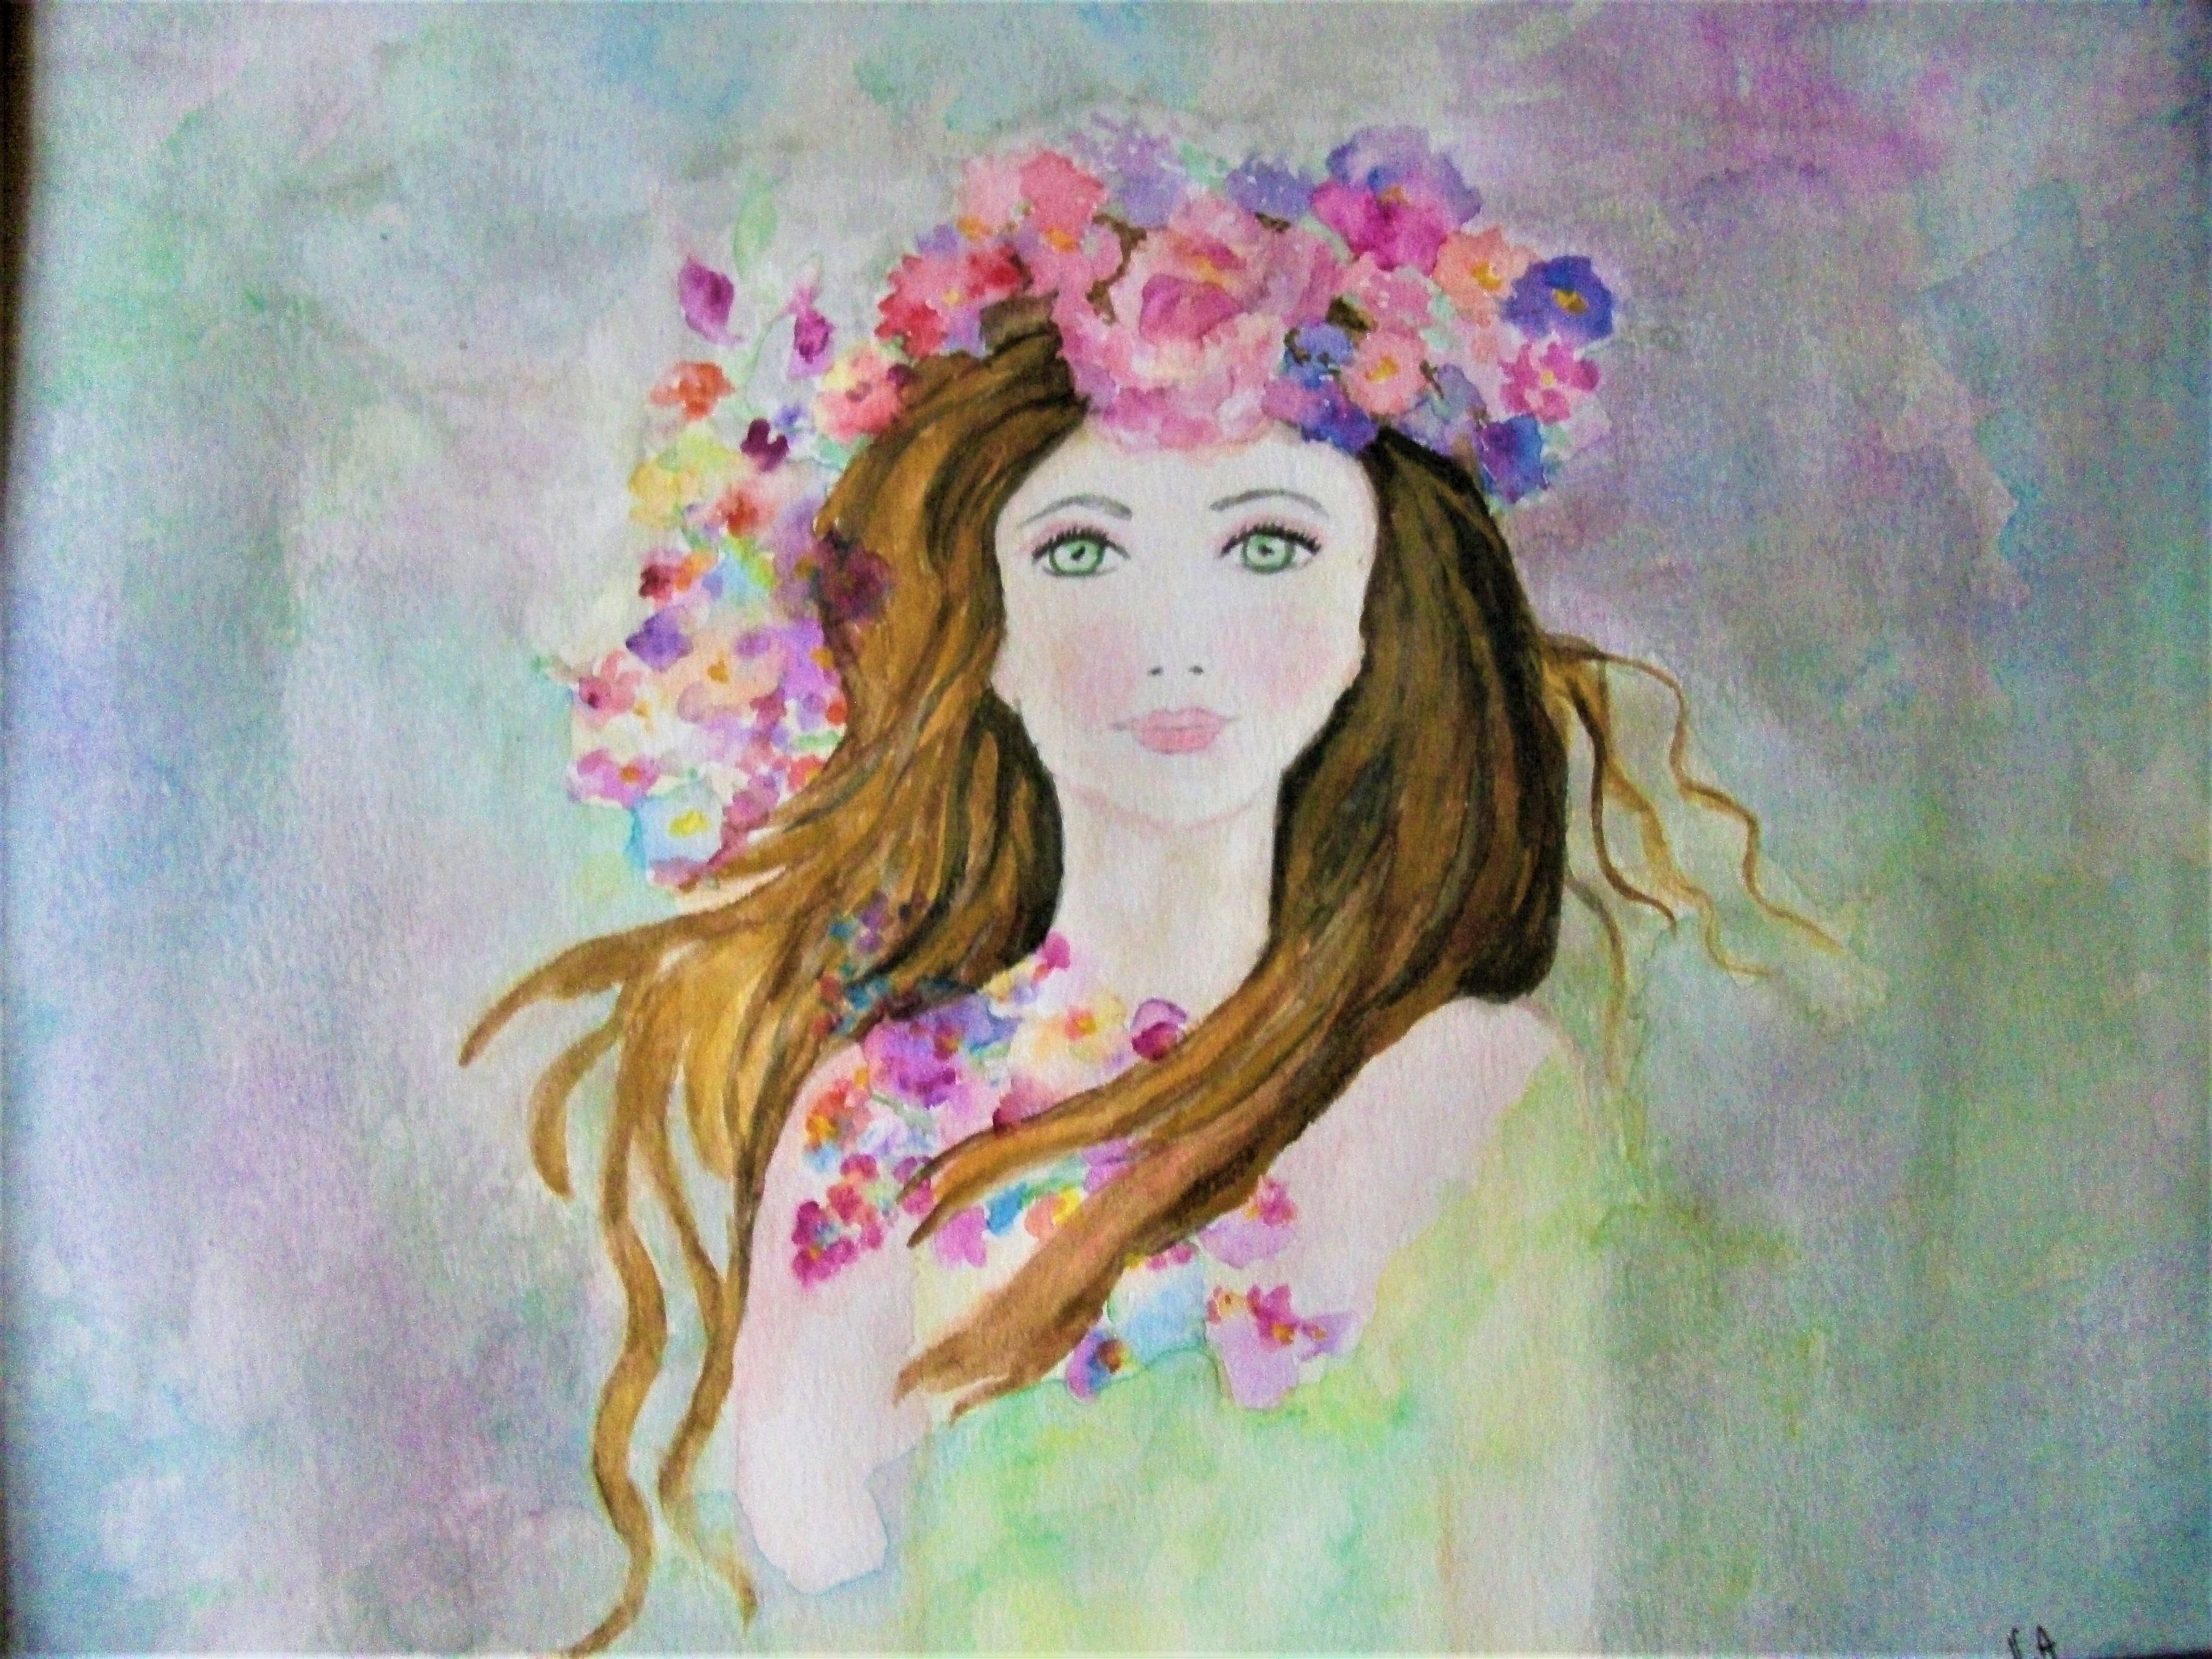 Aquarelle Originale Fille Fleurs Illustration Fille Florale